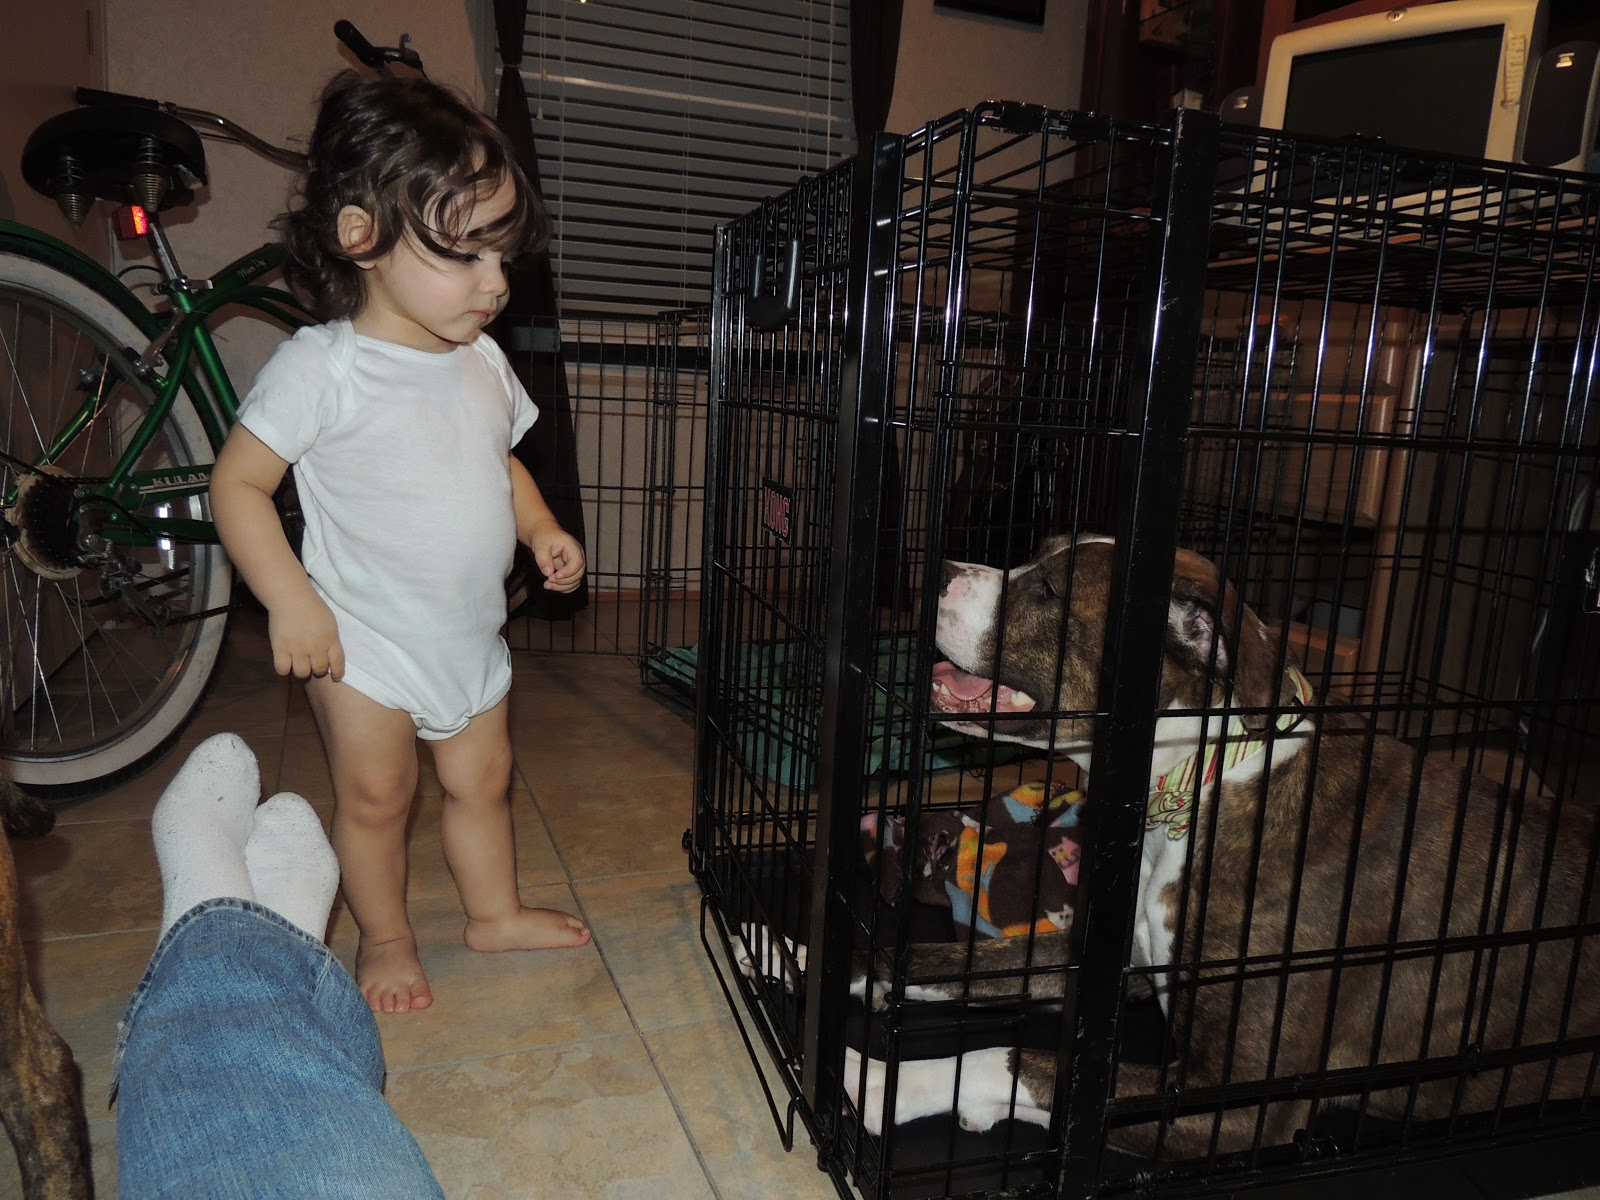 Crate Trained Dog Started Whining